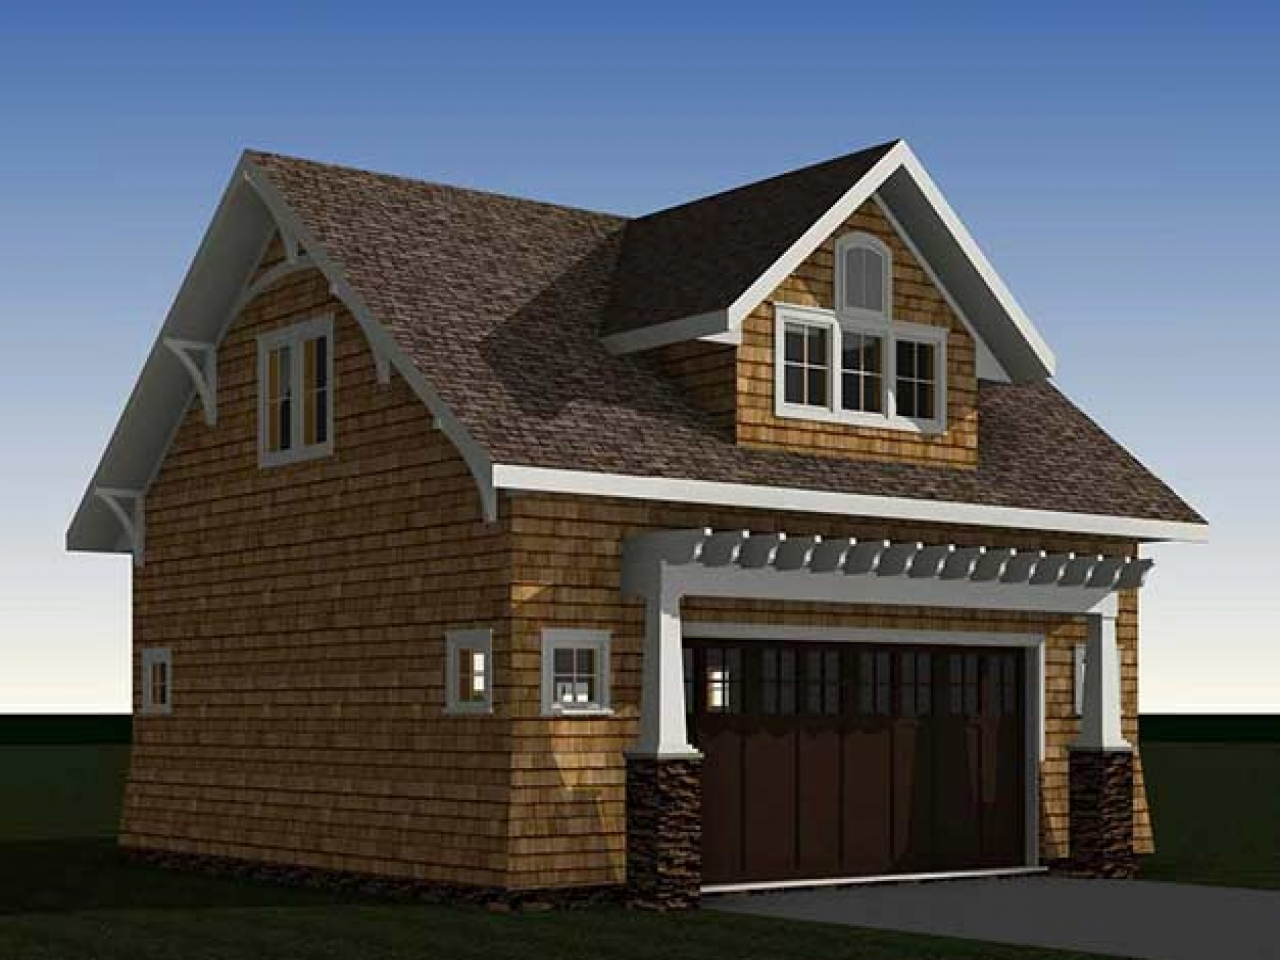 bungalow garage plans bungalow garage with apartment garage apartment interior 10849